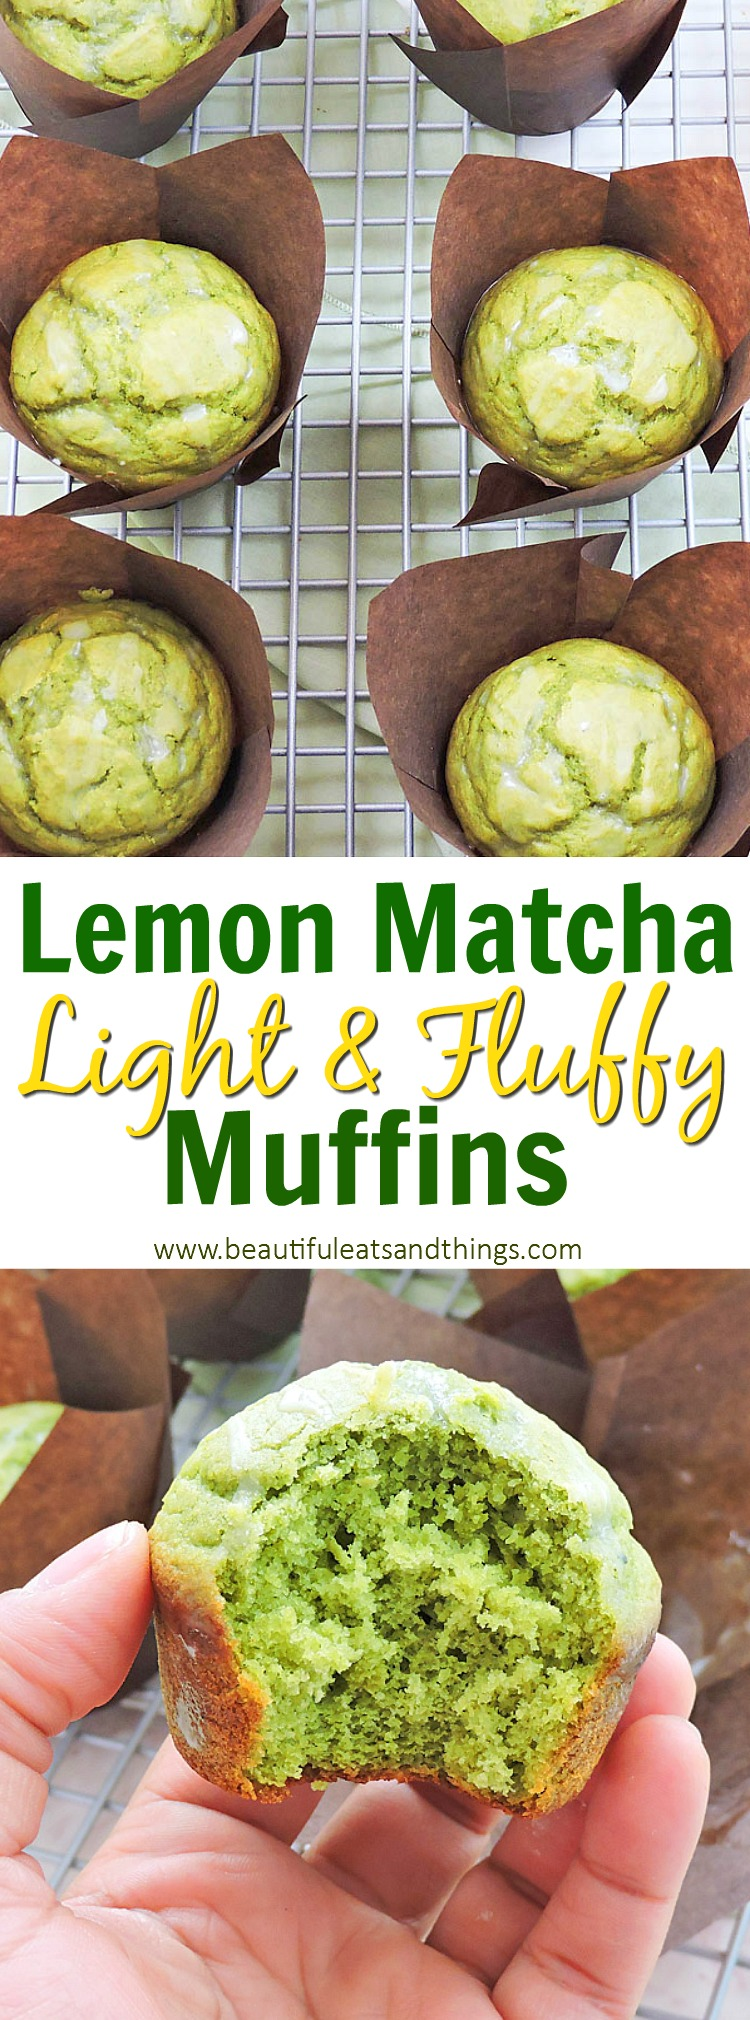 Light and Fluffy Matcha Lemon Muffins